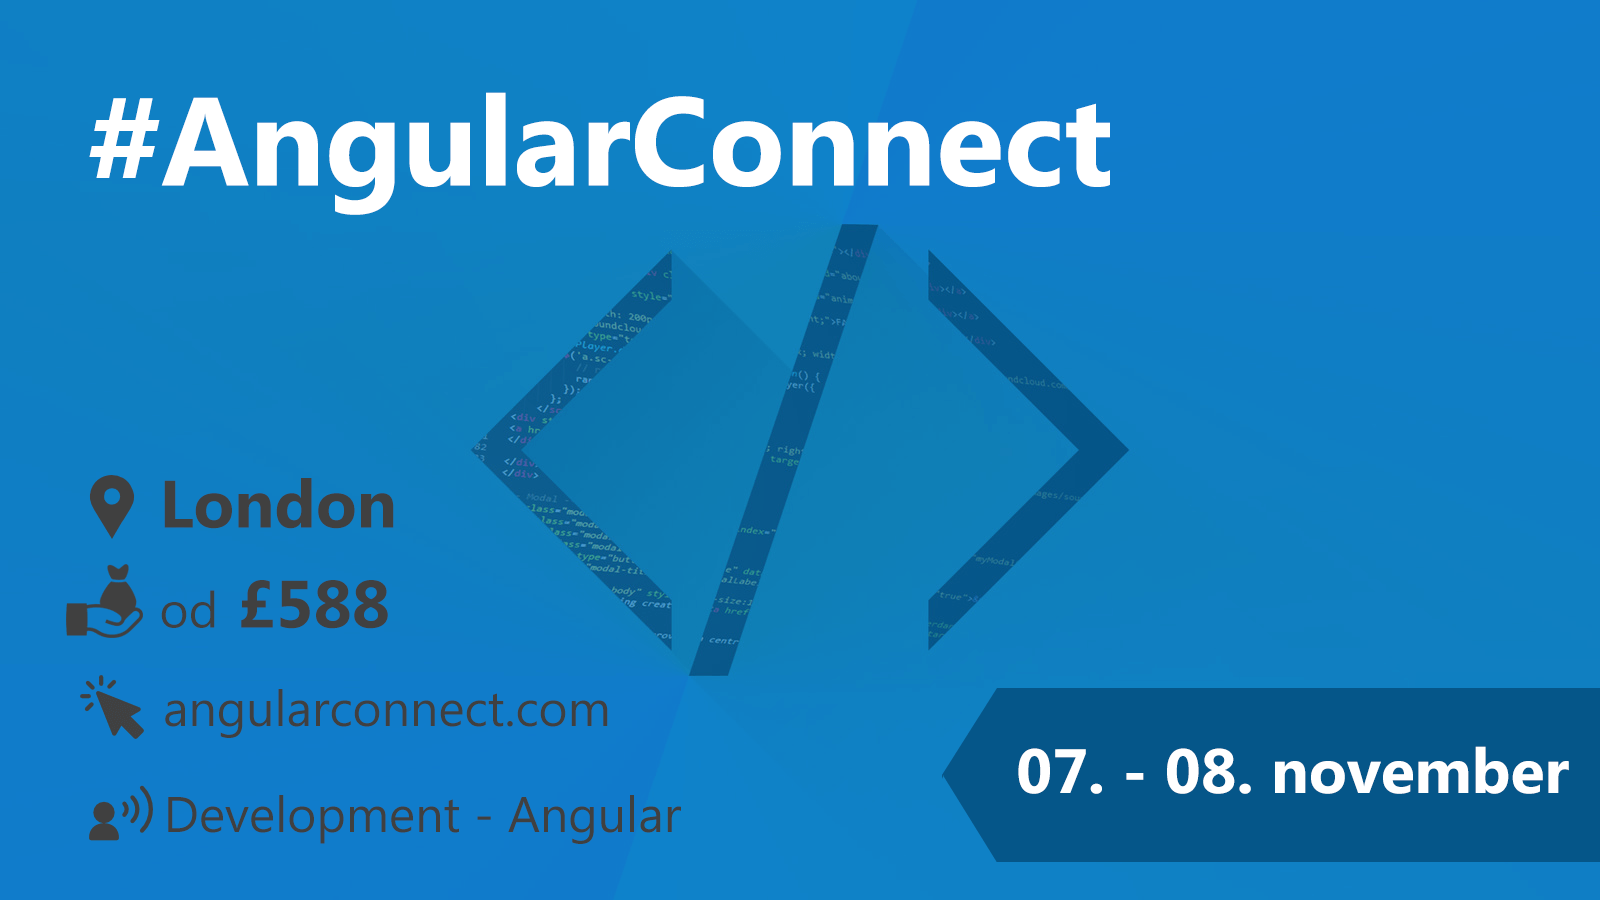 #AngularConnect 7-8.11